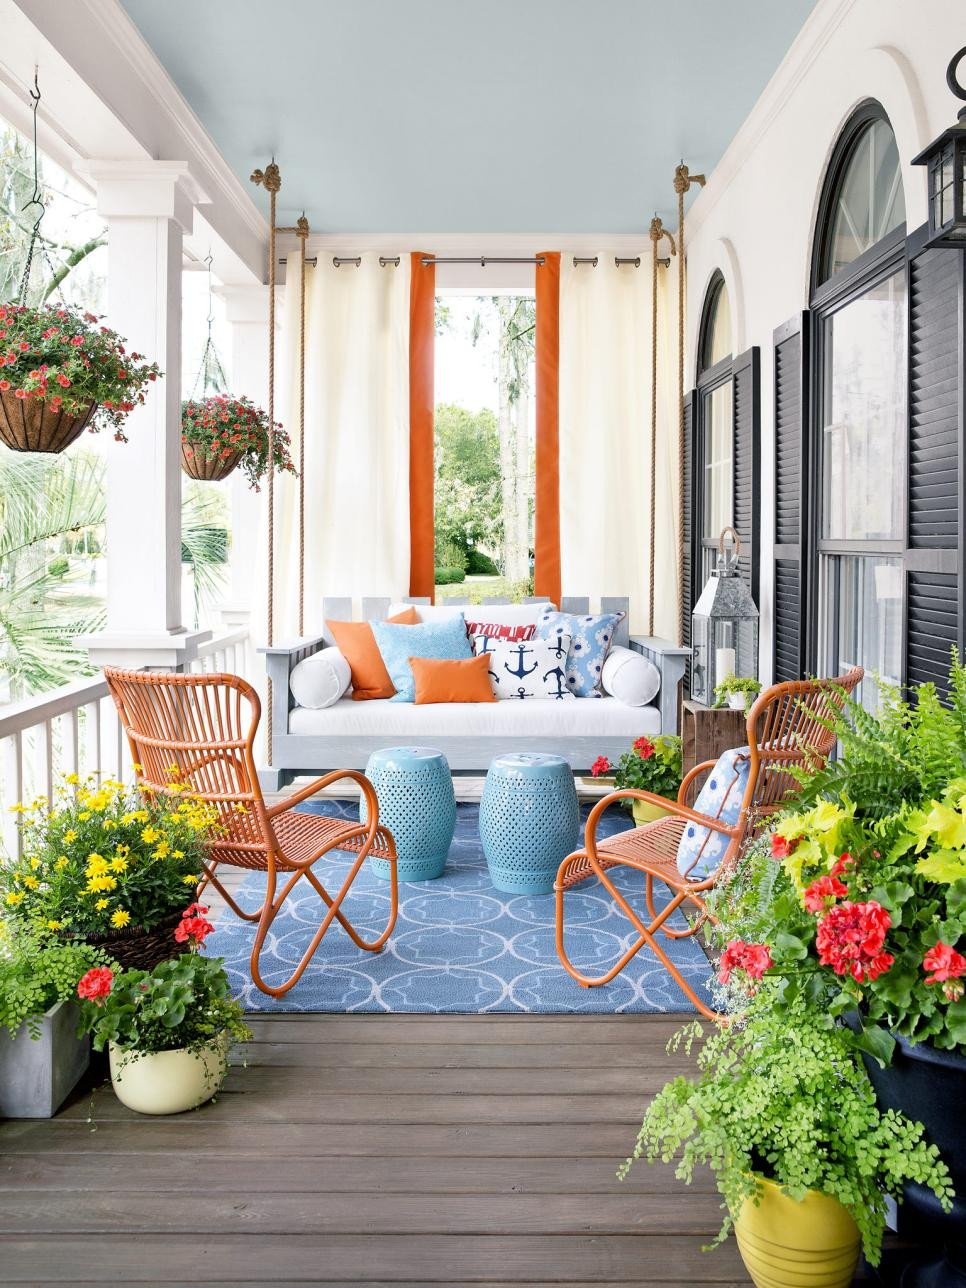 Porch Decor Ideas for Spring Unique 9 Bud Friendly Spring Front Porch Decor Ideas